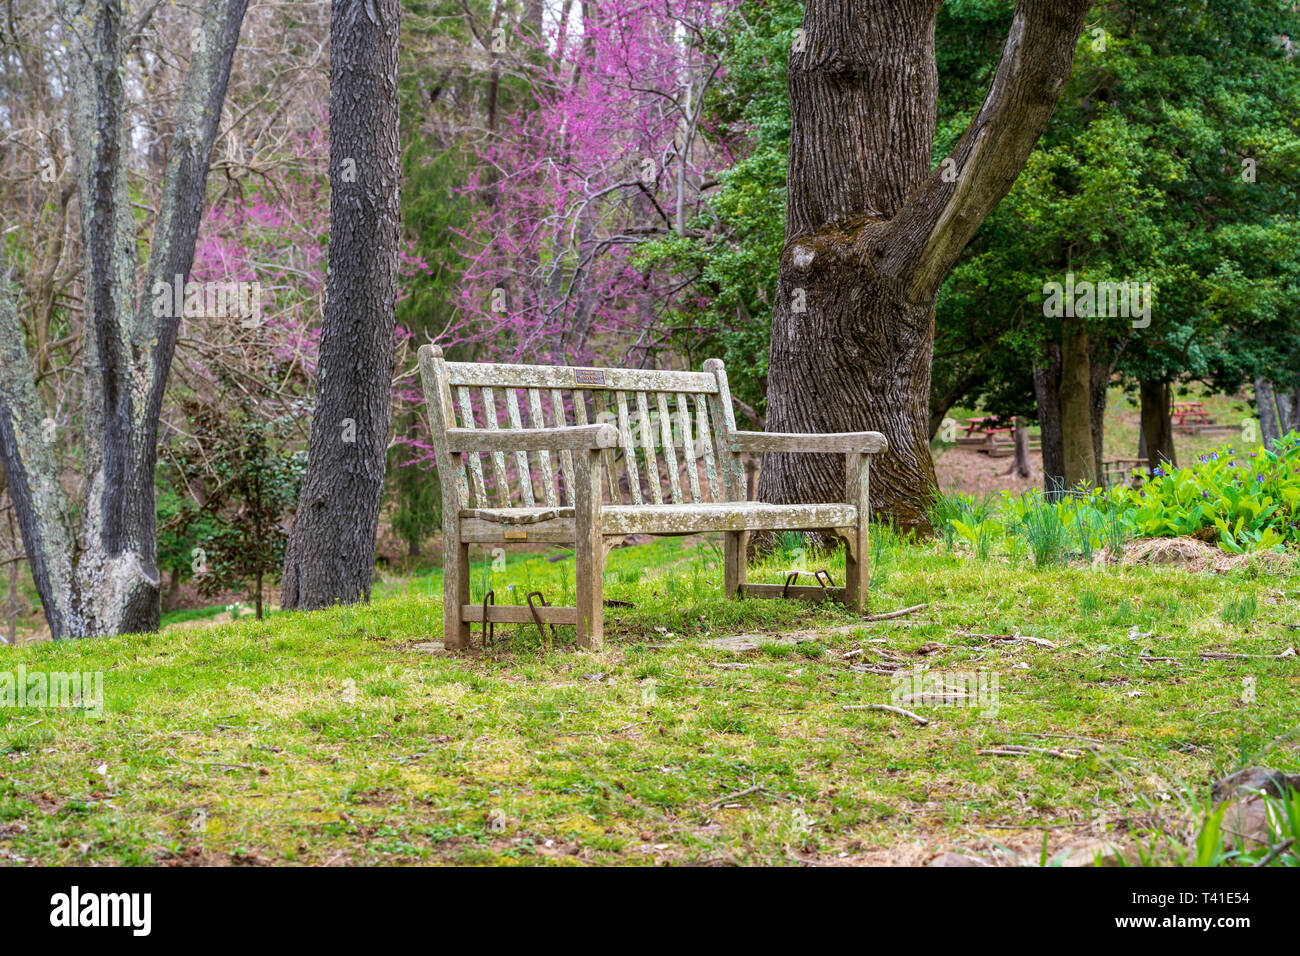 Brilliant A Wooden Park Bench Sits In A Garden Surrounded By Trees And Caraccident5 Cool Chair Designs And Ideas Caraccident5Info